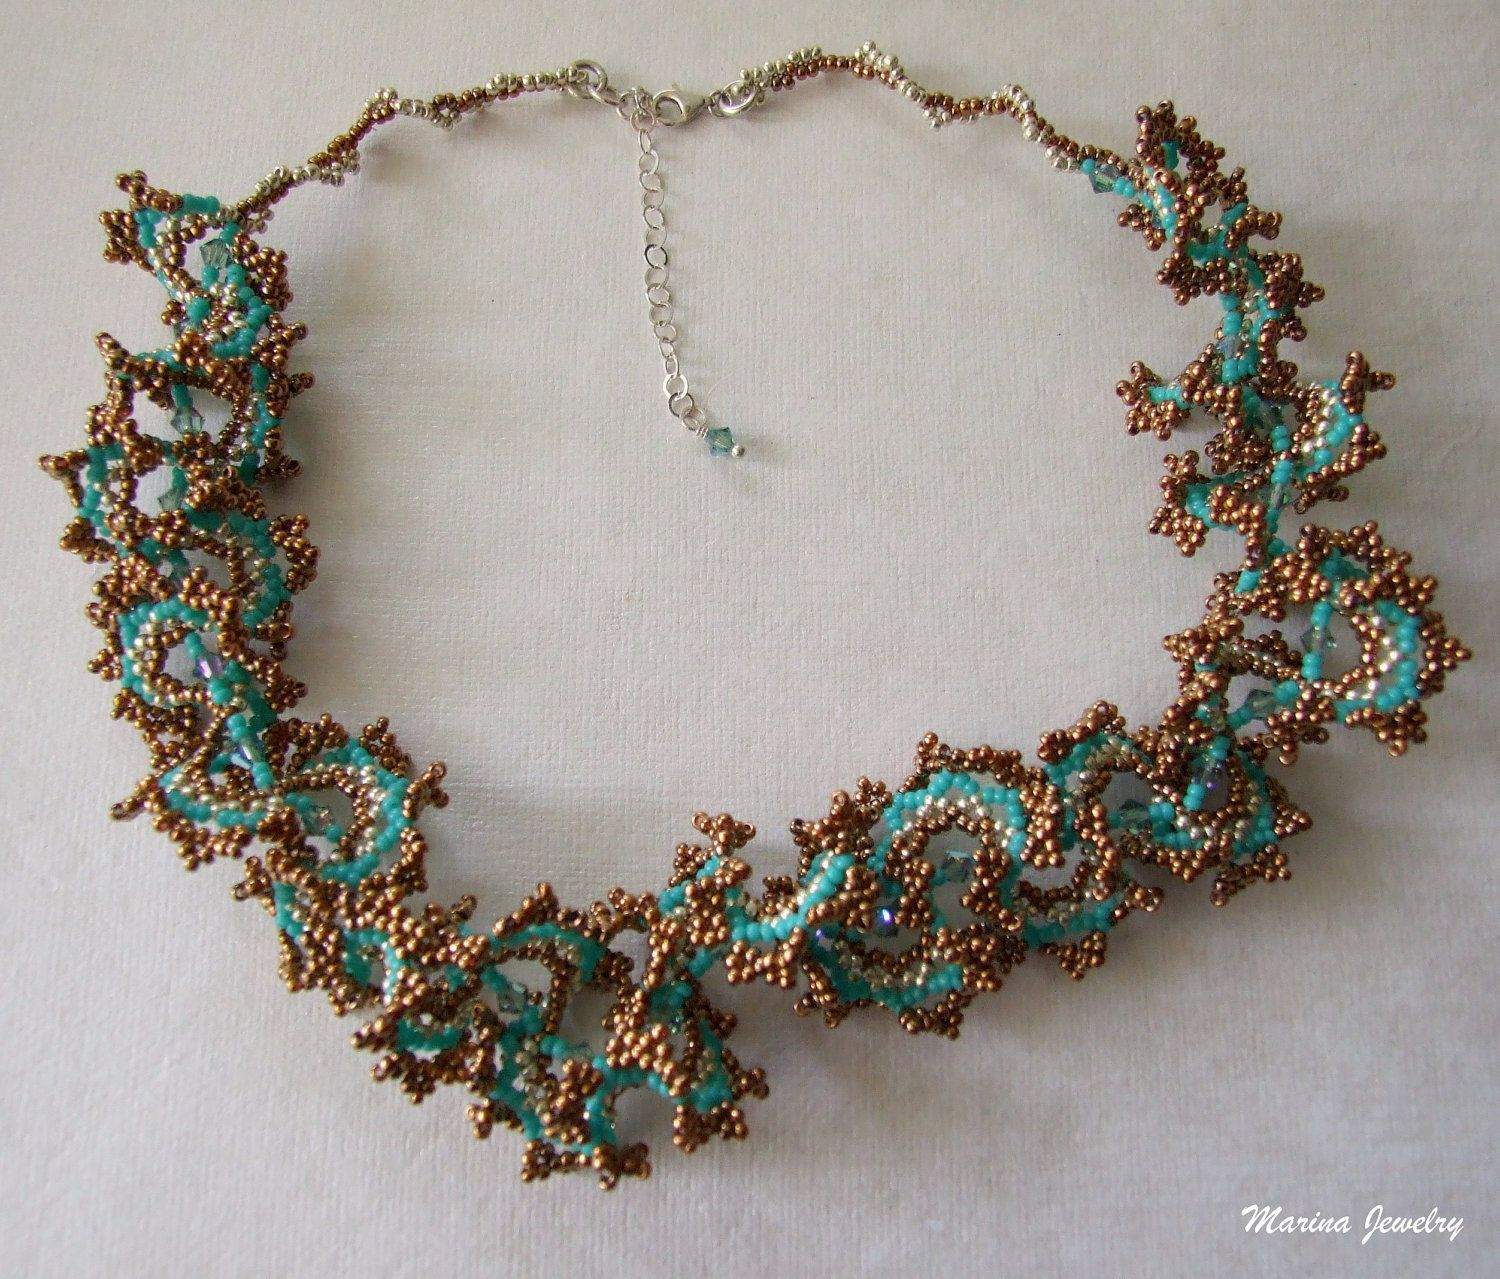 Beaded Necklace - beadwork jewelry - beadweaving - Glass beads ...